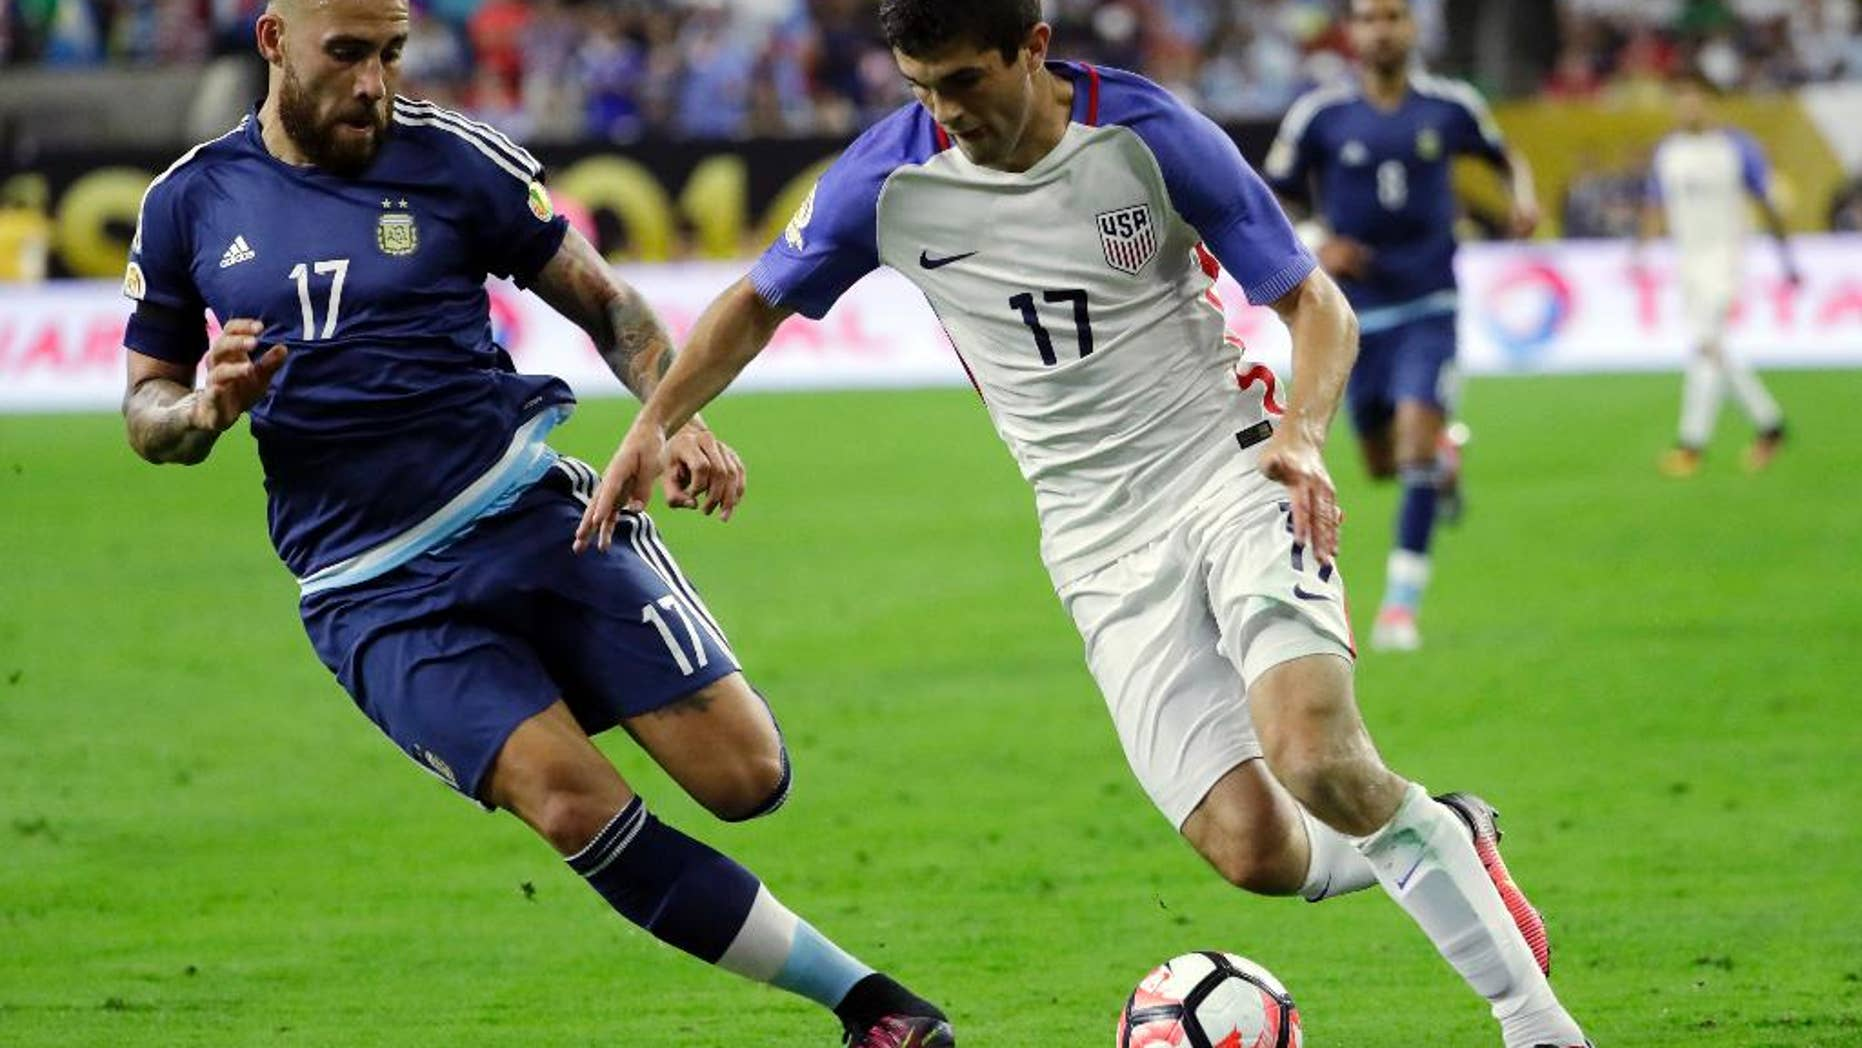 FILE - In this June 21, 2016, file photo, Argentina's Nicolas Otamendi, left, works against United States' Christian Pulisic during a Copa America Centenario semifinal soccer match  in Houston. Coach Jurgen Klinsmann made it clear Monday, Sept. 5, he intends to bring the talented teenager Pulisic along slowly and is not likely to start him Tuesday against Trinidad and Tobago, the Americans' finale in the semifinal round of the North and Central American and Caribbean region. (AP Photo/David J. Phillip, File)